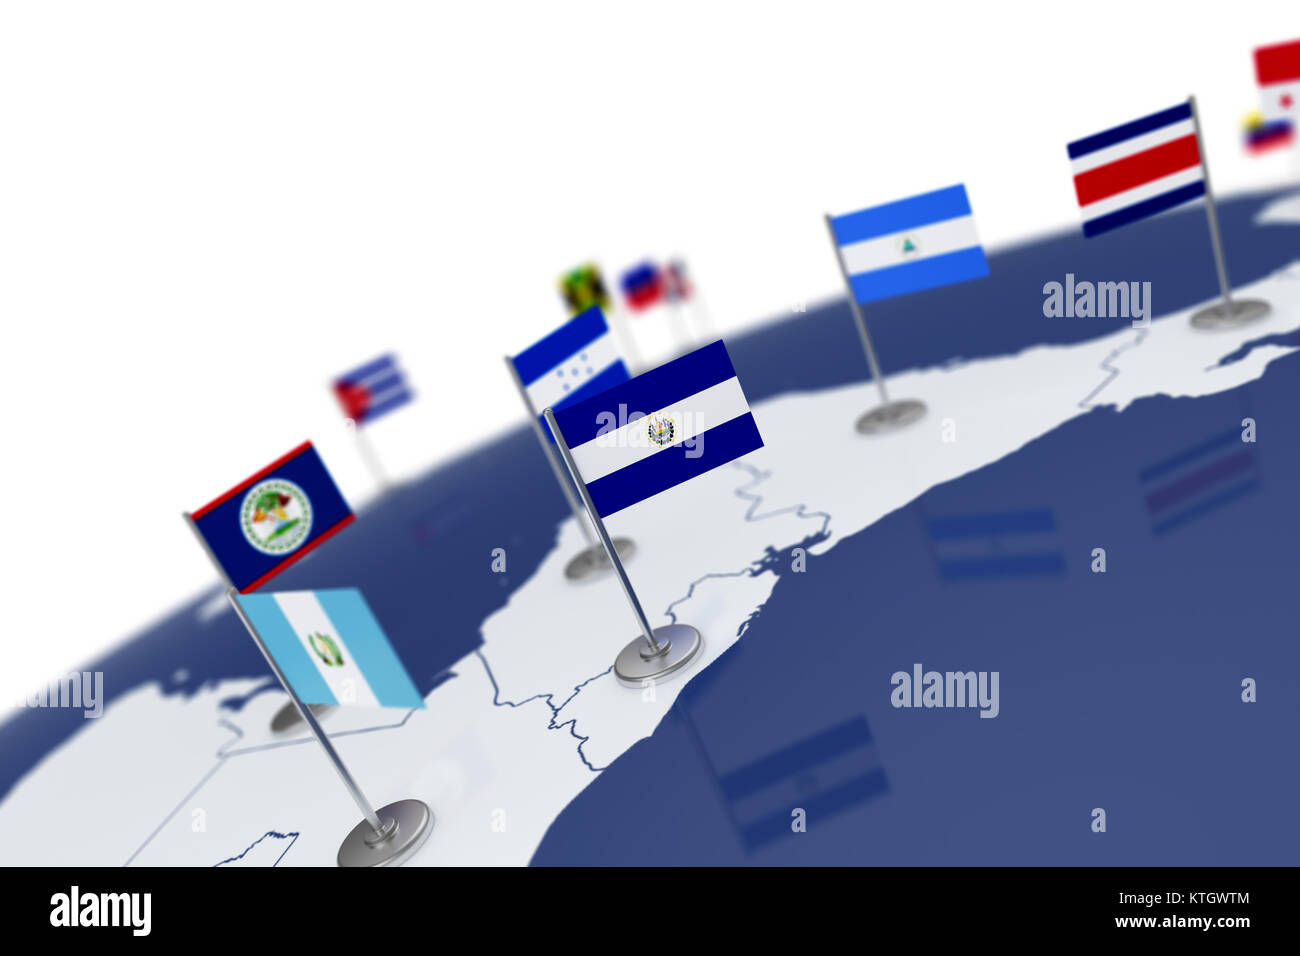 El salvador flag country flag with chrome flagpole on the world el salvador flag country flag with chrome flagpole on the world map with neighbors countries borders 3d illustration rendering gumiabroncs Gallery